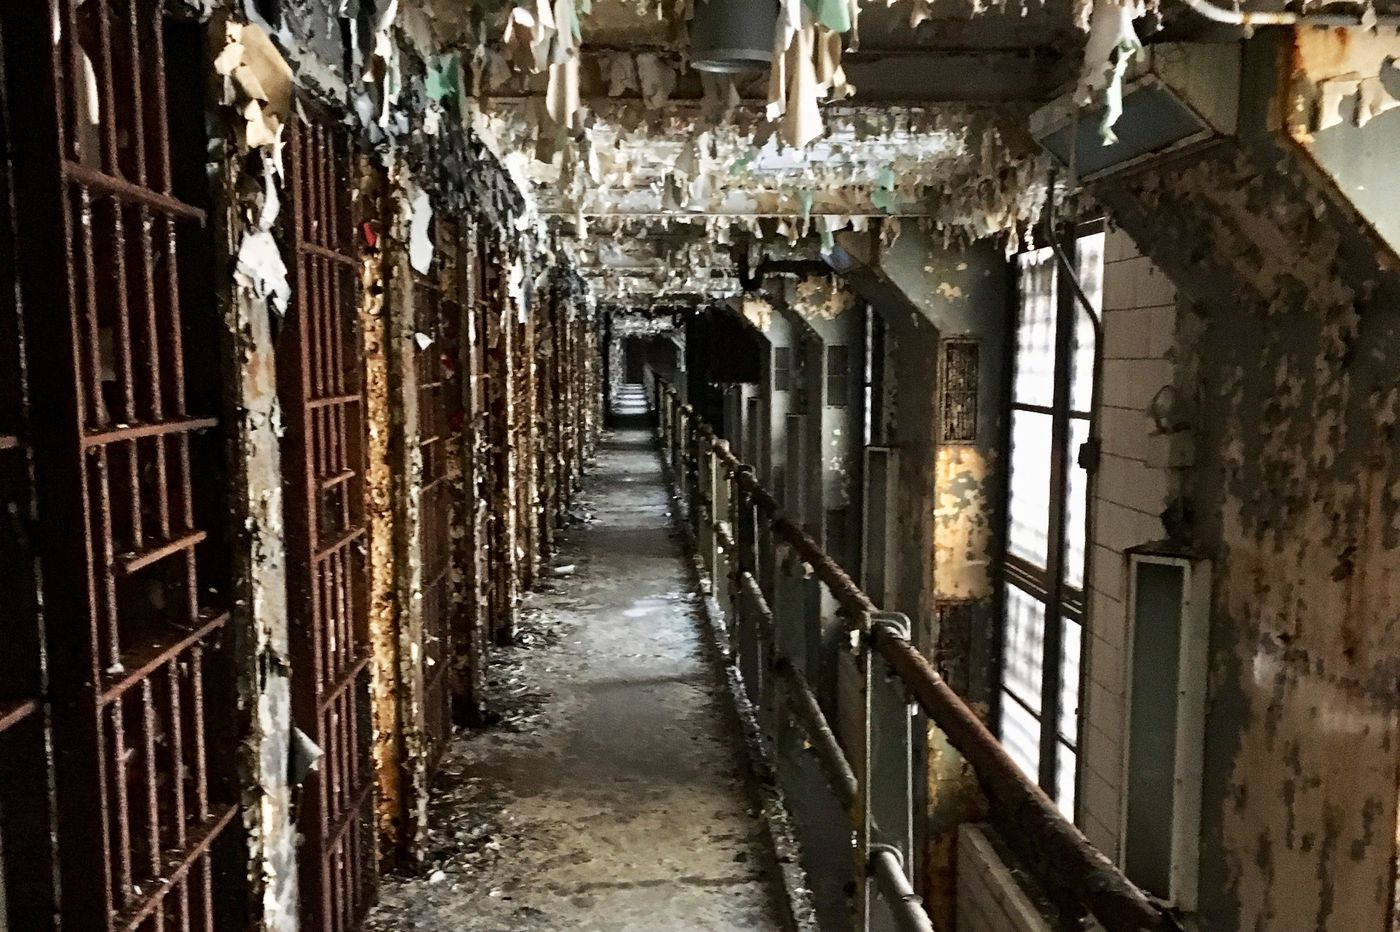 Where's Jake's cell? At Old Joliet Prison, that's the big question